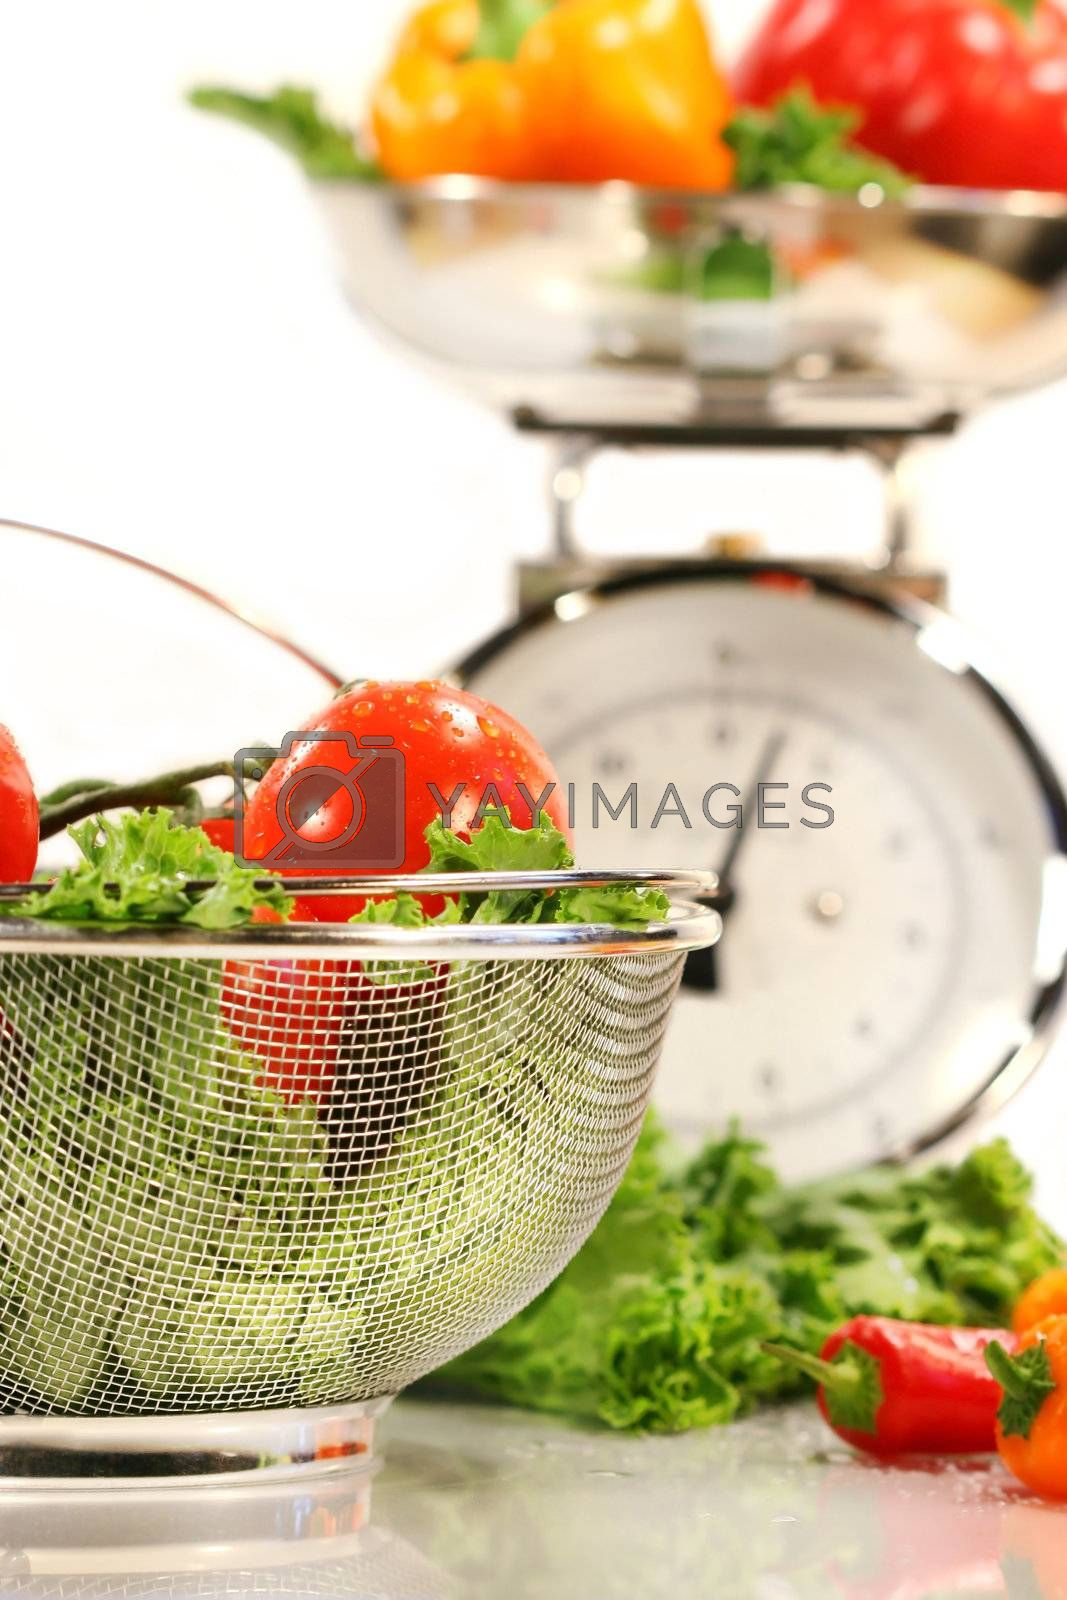 Vegetables, food basket and kitchen scale on white background